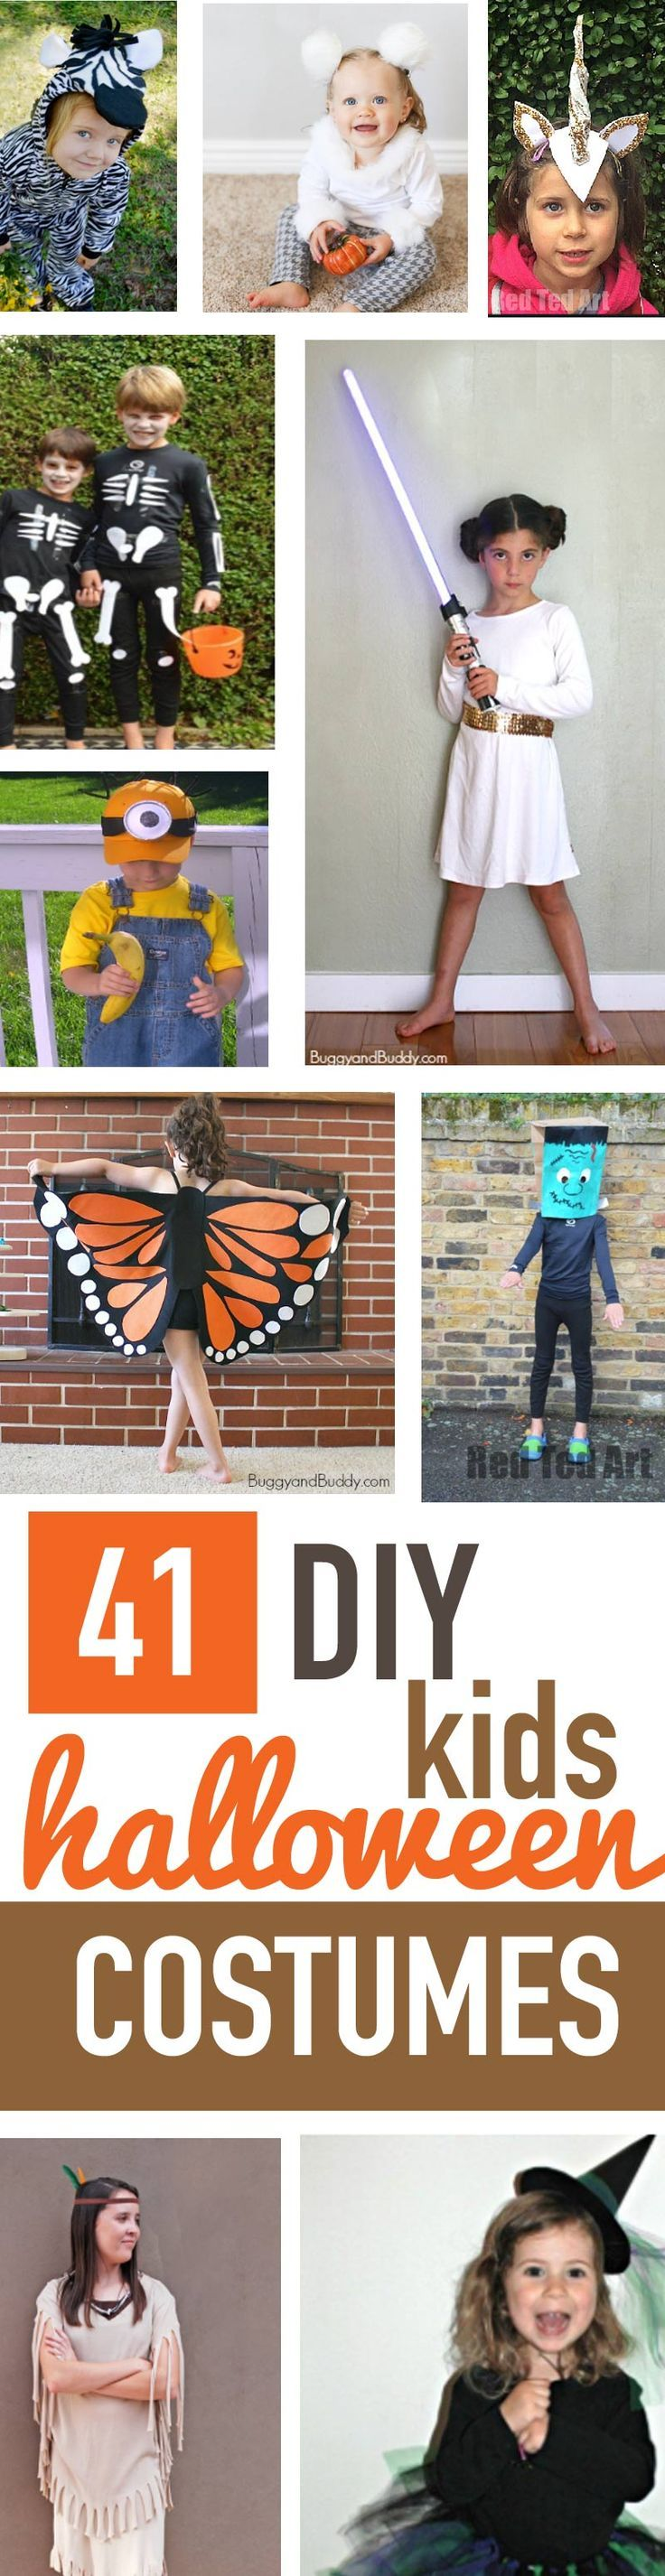 Looking for an easy DIY kids halloween costume? Here's a great list of over 35 easy and cheap costume ideas for kids. Perfect for harvest festivals or halloween trick or treating.